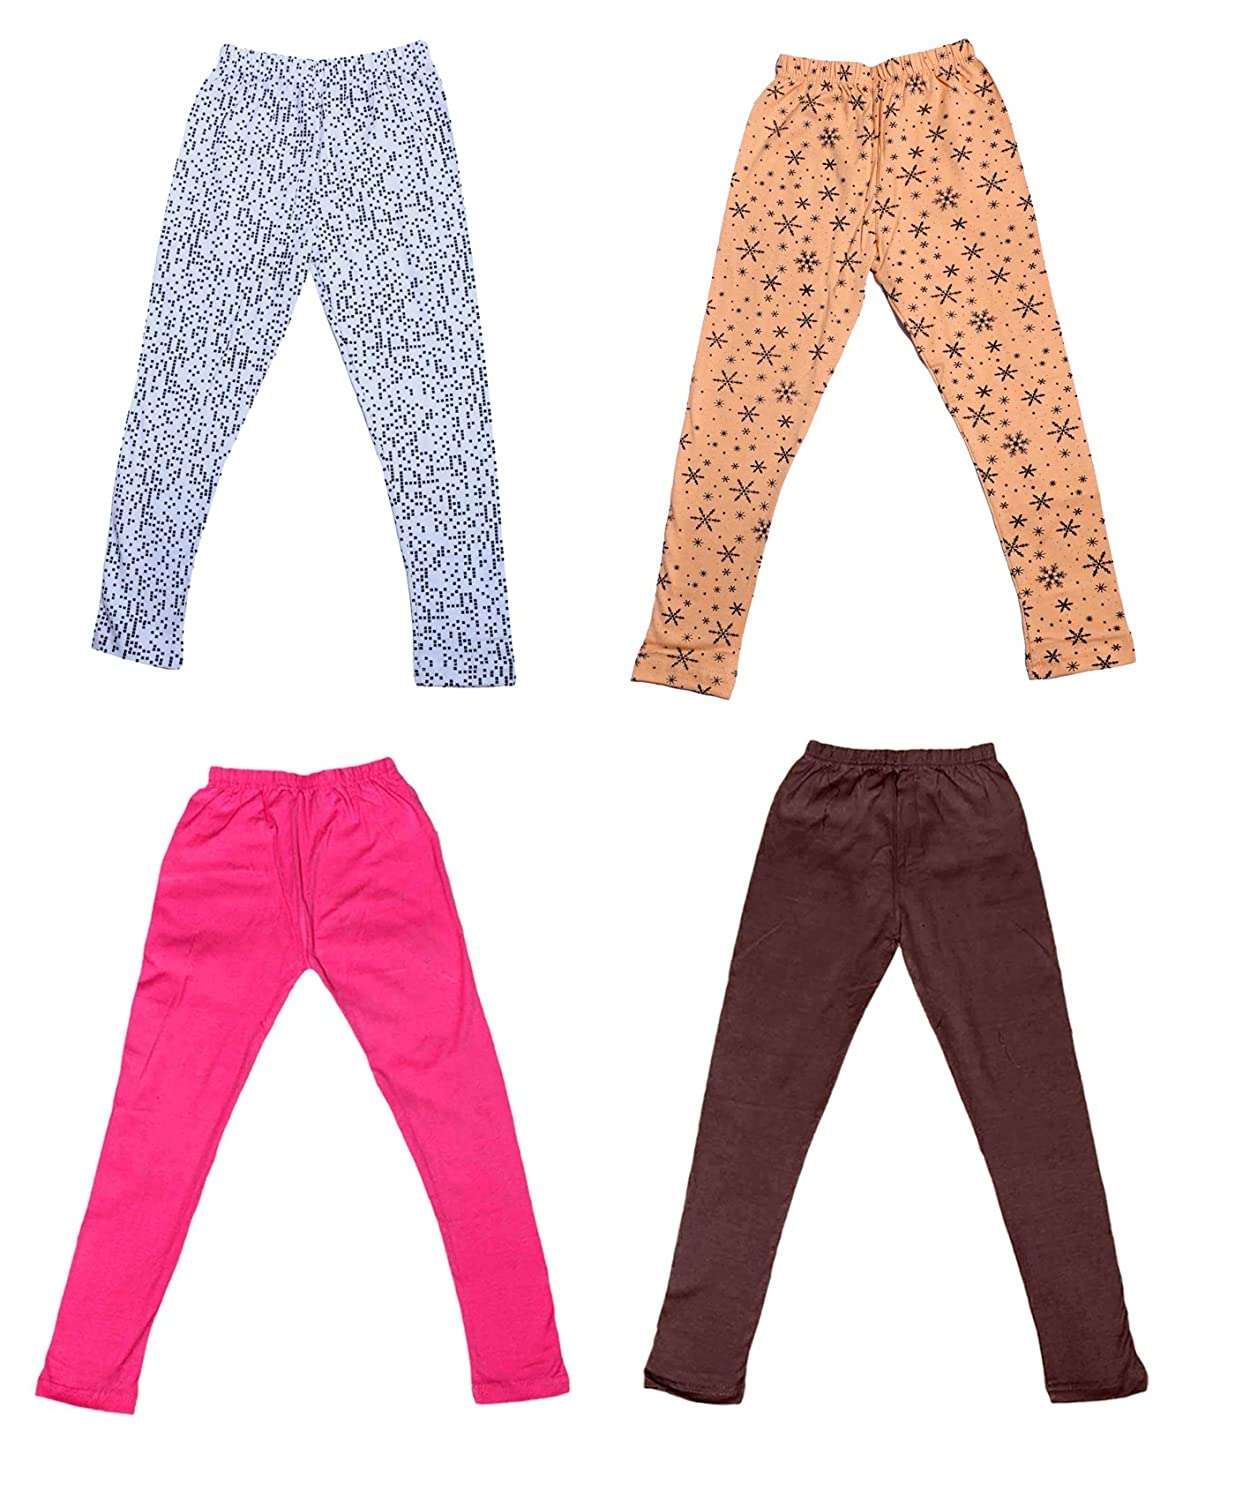 /_Multicolor/_Size-1-3 Years/_71412131921-IW-P4-22 Pack Of 4 Indistar Girls 2 Cotton Solid Legging Pants and 2 Cotton Printed Legging Pants